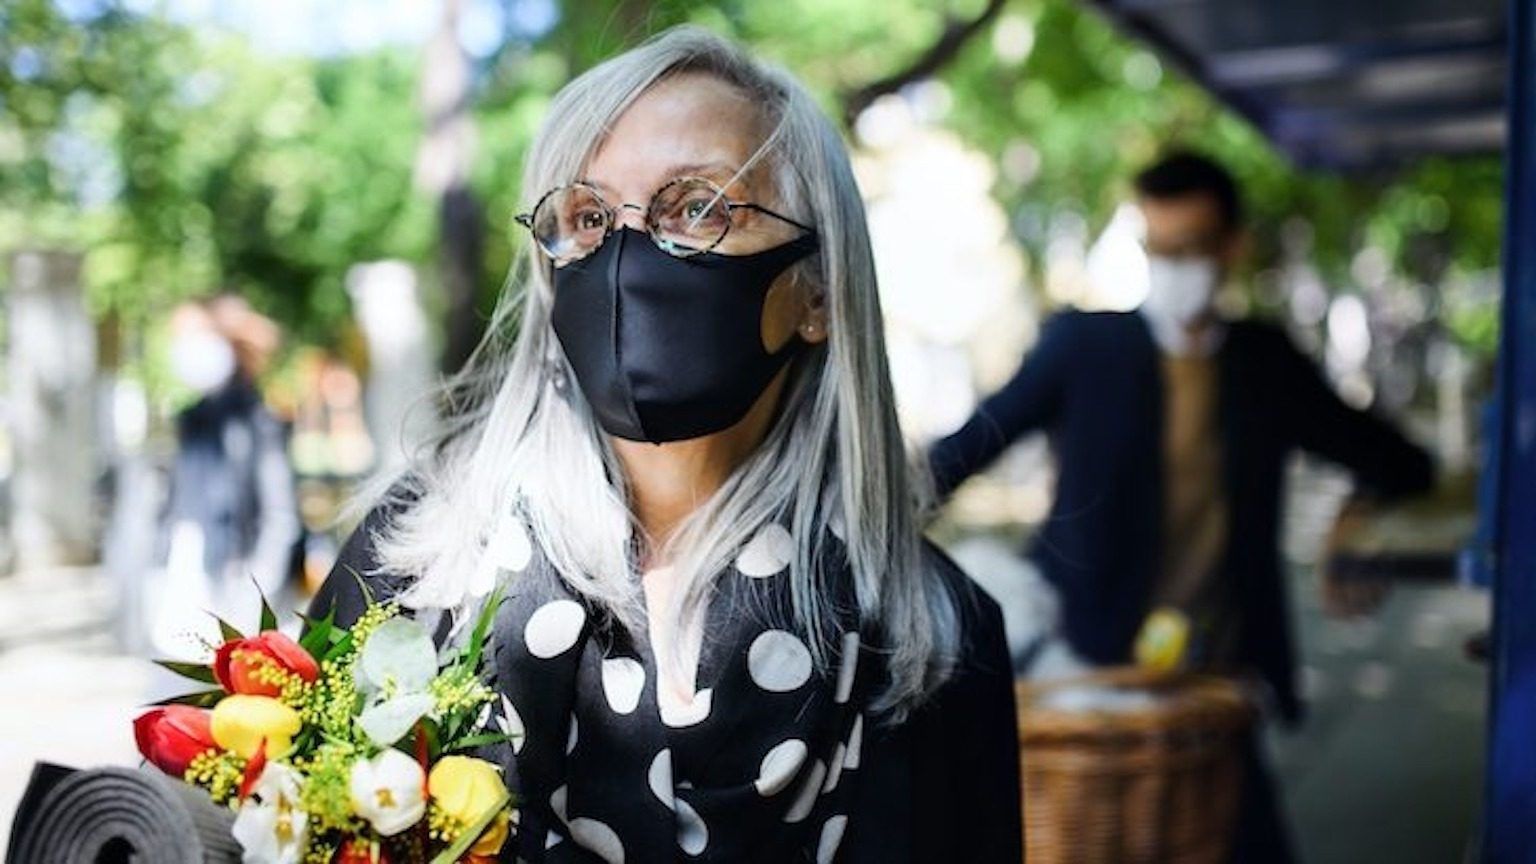 Woman with white hair wearing a black face mask and carrying flowers